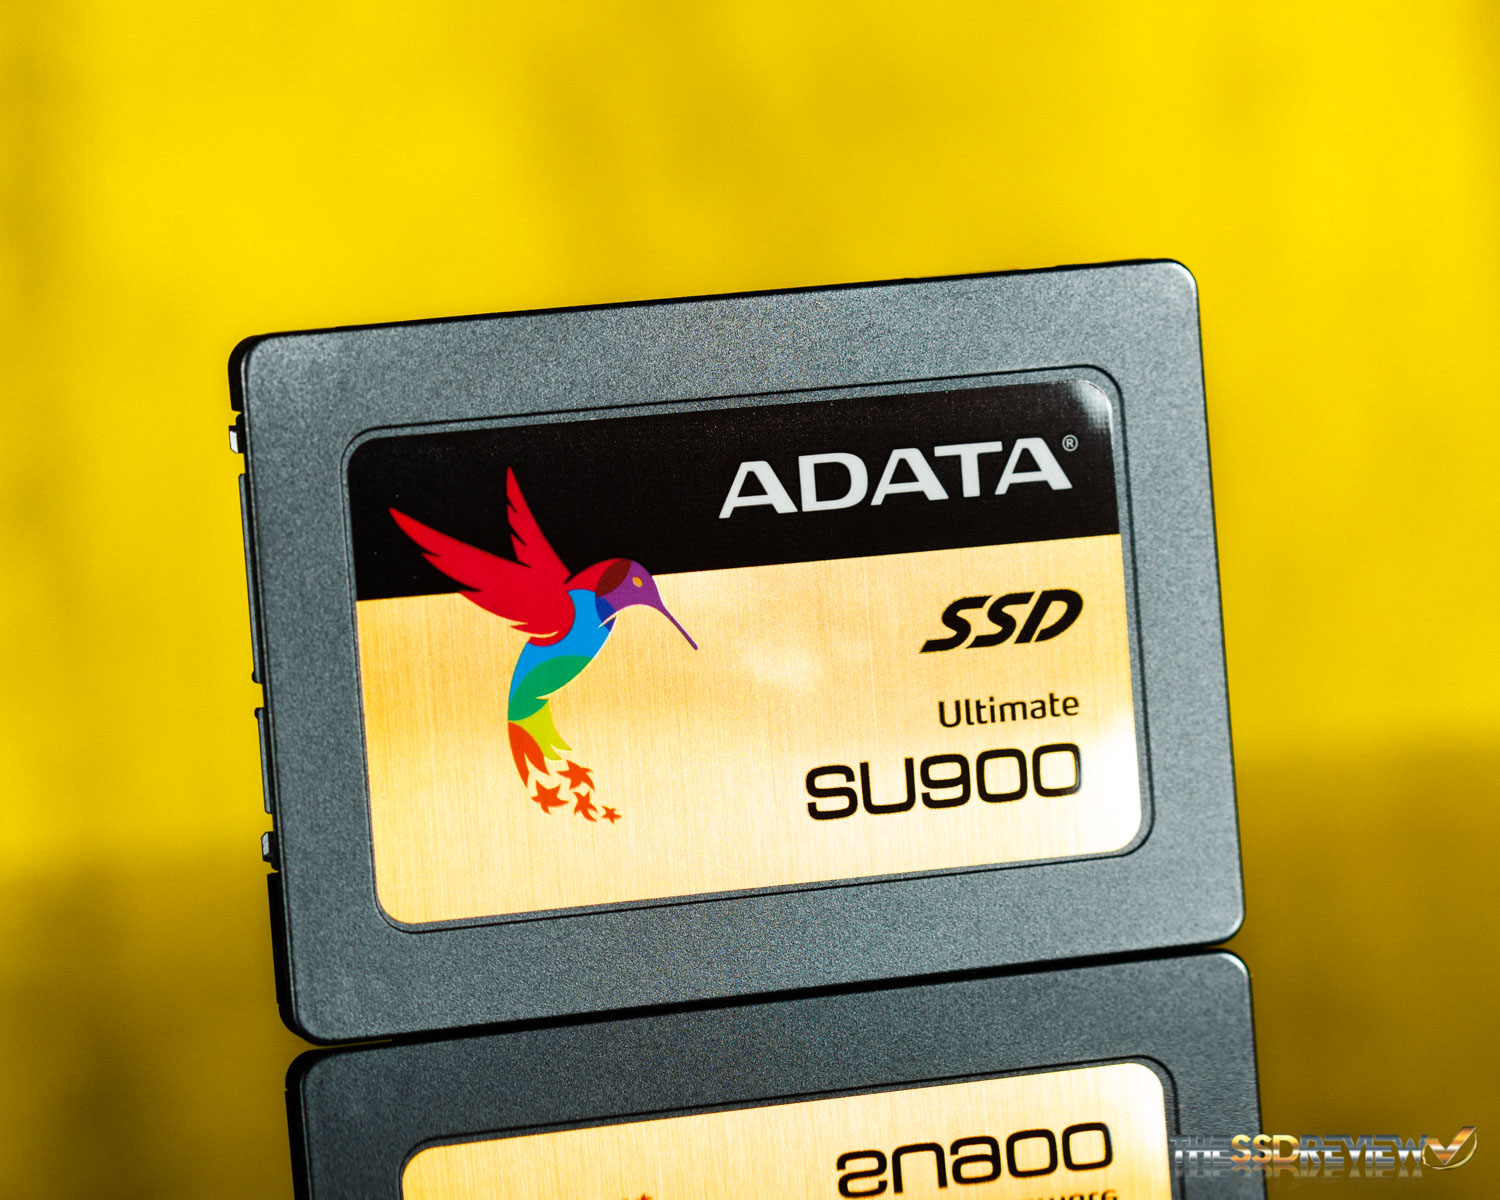 ADATA Ultimate SU900 SSD Review (512GB) – 3D MLC, But At What Cost